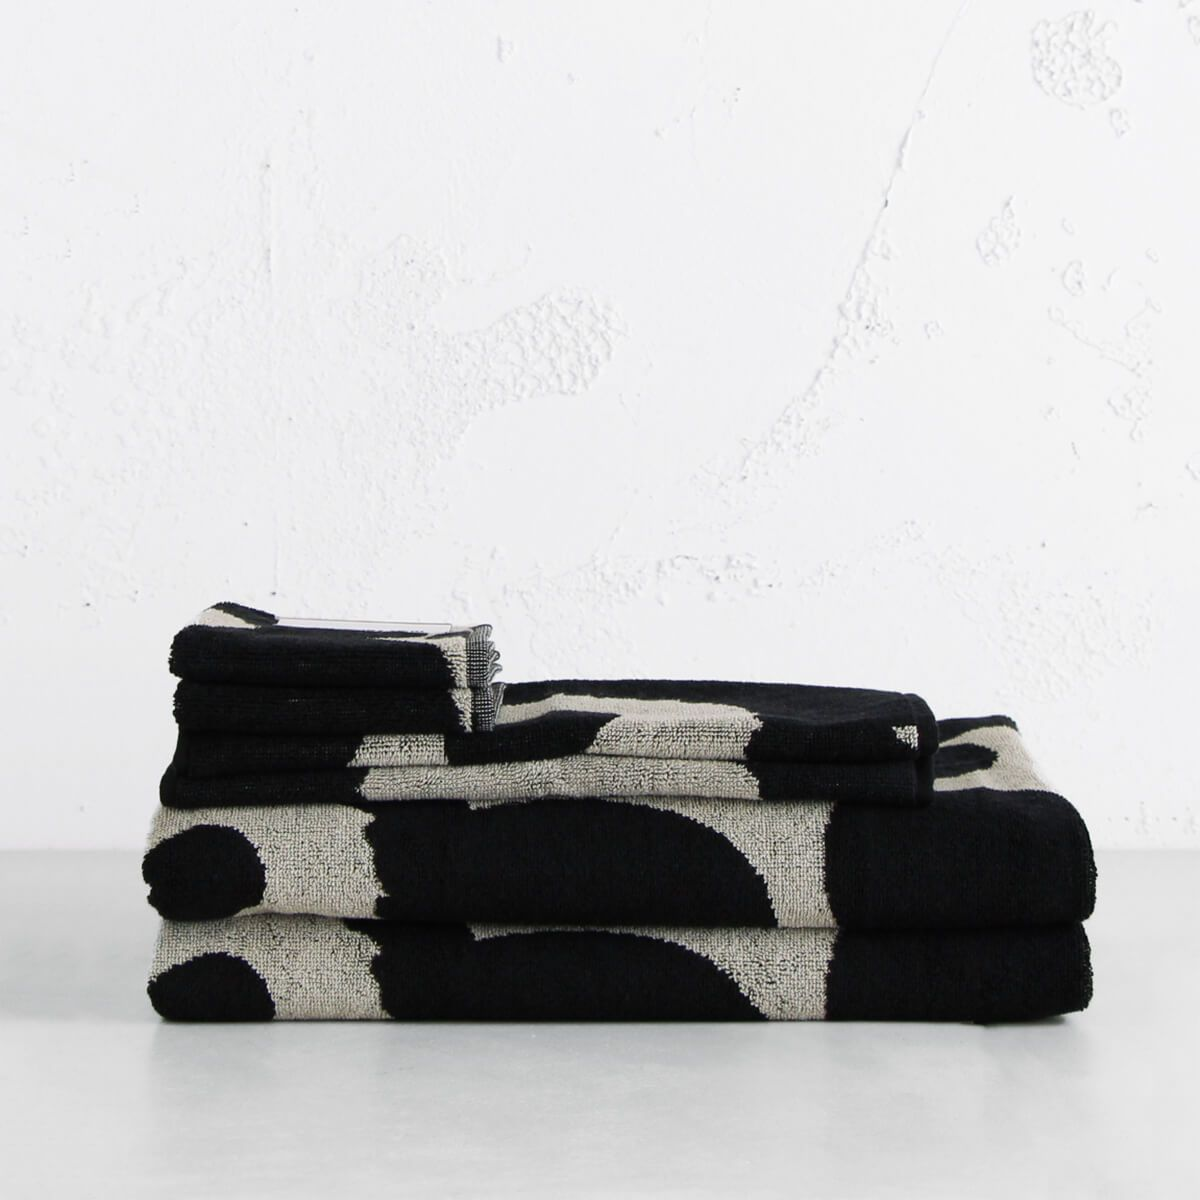 MARIMEKKO BATHROOM TOWELS  |  UNIKKO POPPY  |  SCANDI BATH TOWELS